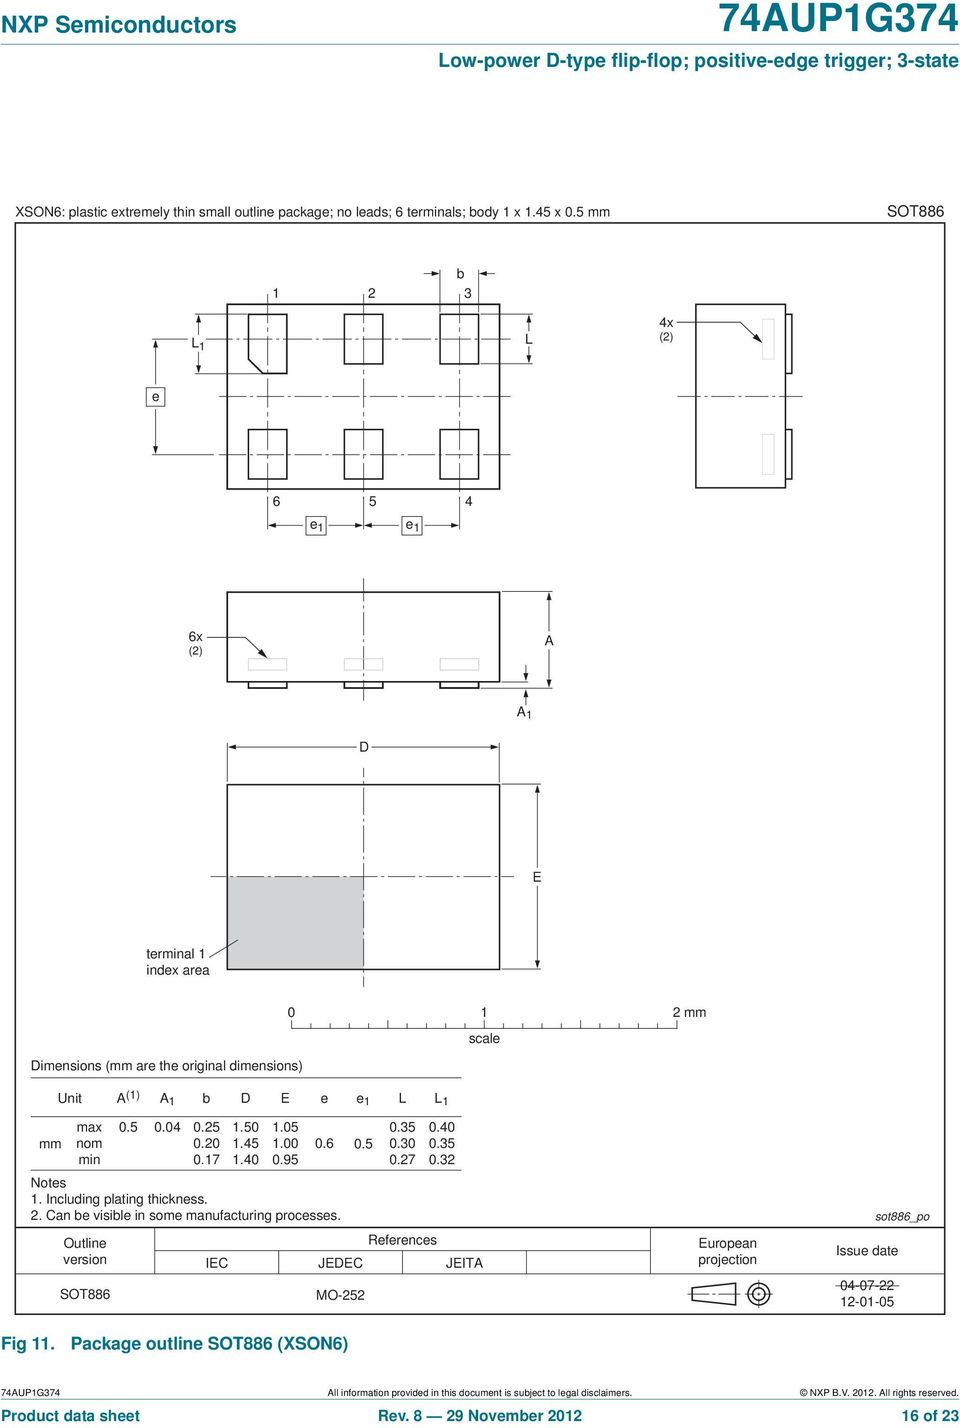 Outline version SOT886 0.5 0.04 0.25 1.50 0.20 1.45 0.17 1.40 1.05 1.00 0.95 0.6 Notes 1. Including plating thickness. 2. Can be visible in some manufacturing processes. 0.5 References IEC JEDEC JEITA MO-252 0.